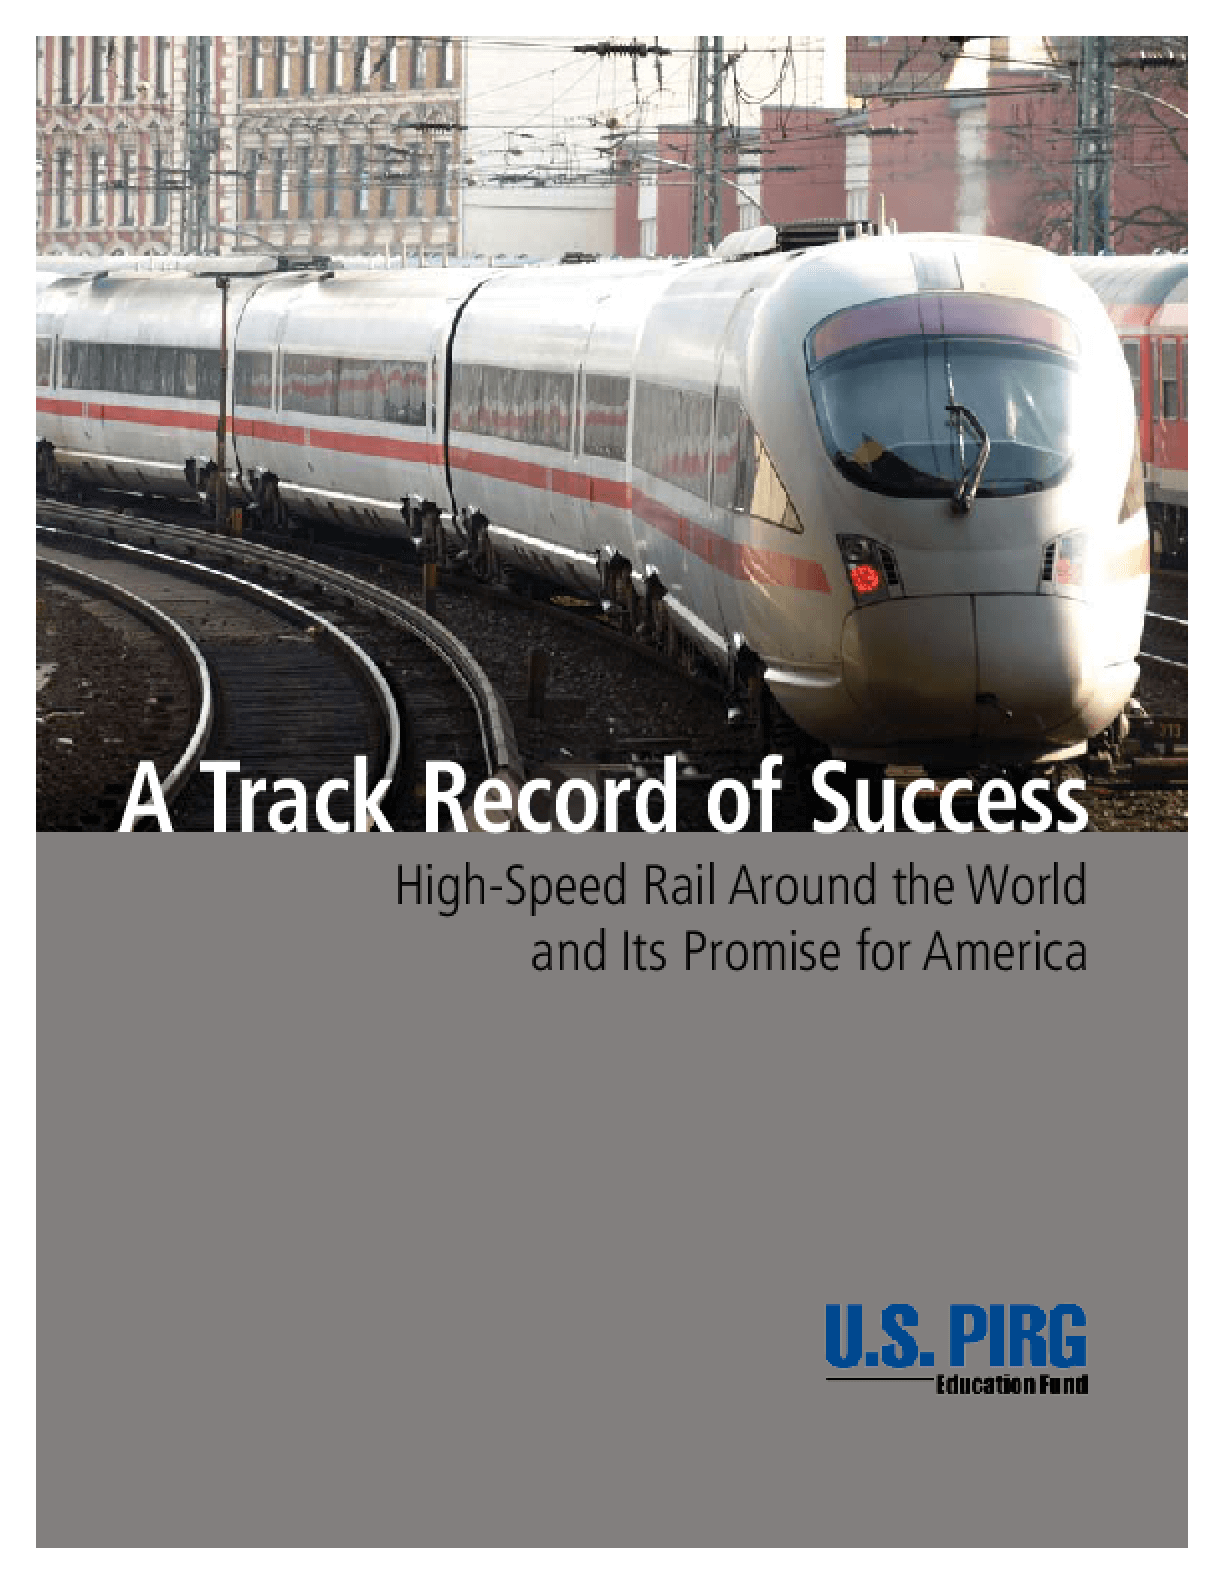 A Track Record of Success: High-Speed Rail Around the World and Its Promise for America